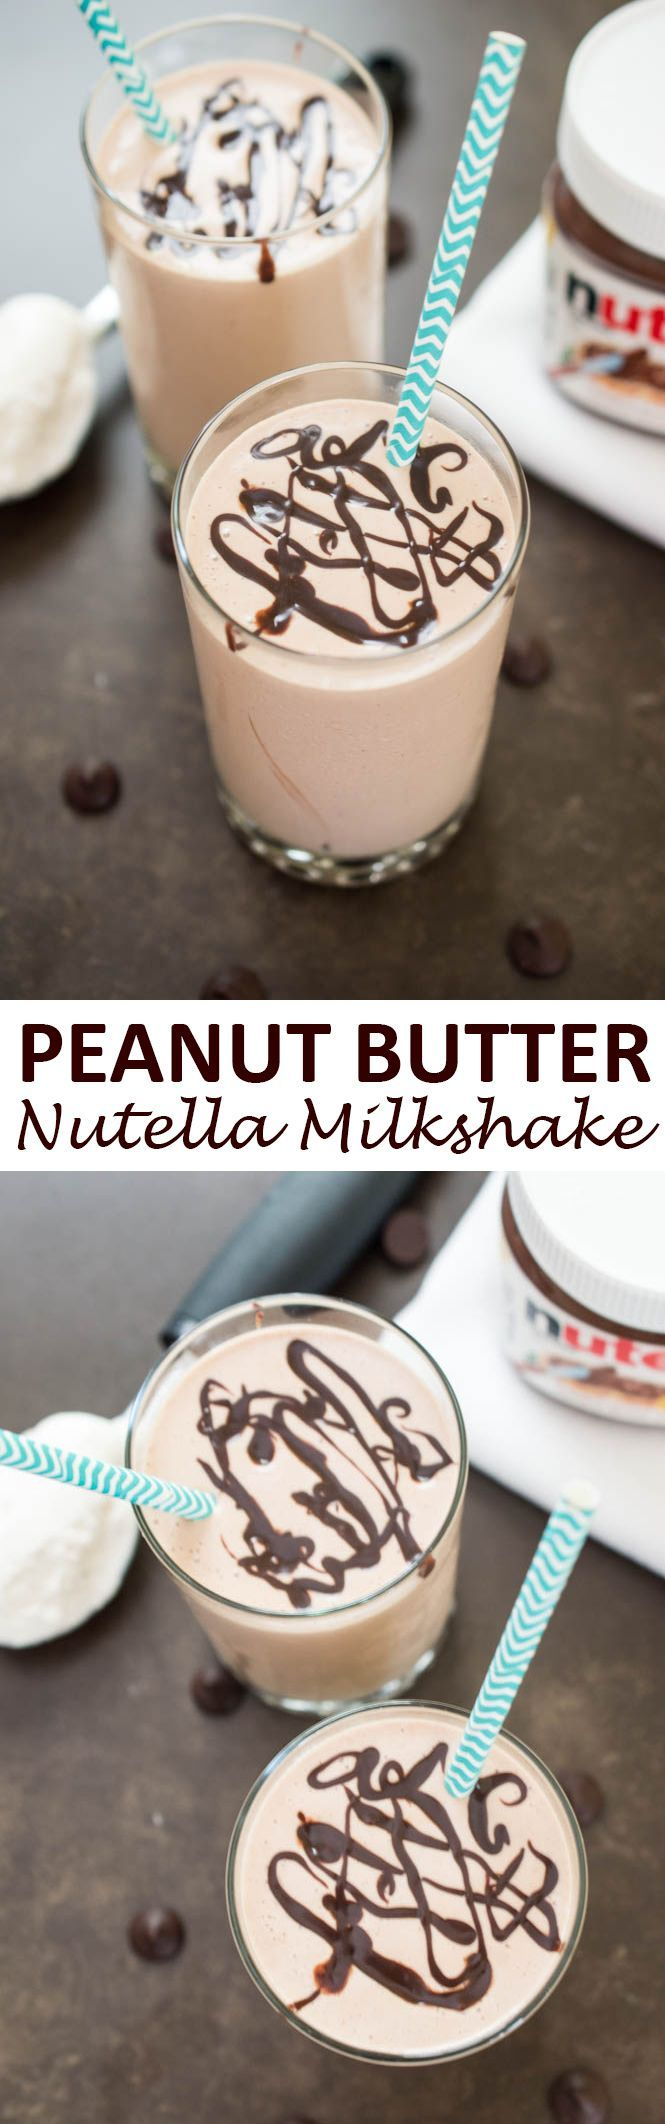 4 ingredient Creamy Peanut Butter & Nutella Milkshake. Takes less than 5 minutes to make! | chefsavvy.com #recipe #peanut #butter #nutella #milkshake #dessert #chocolate